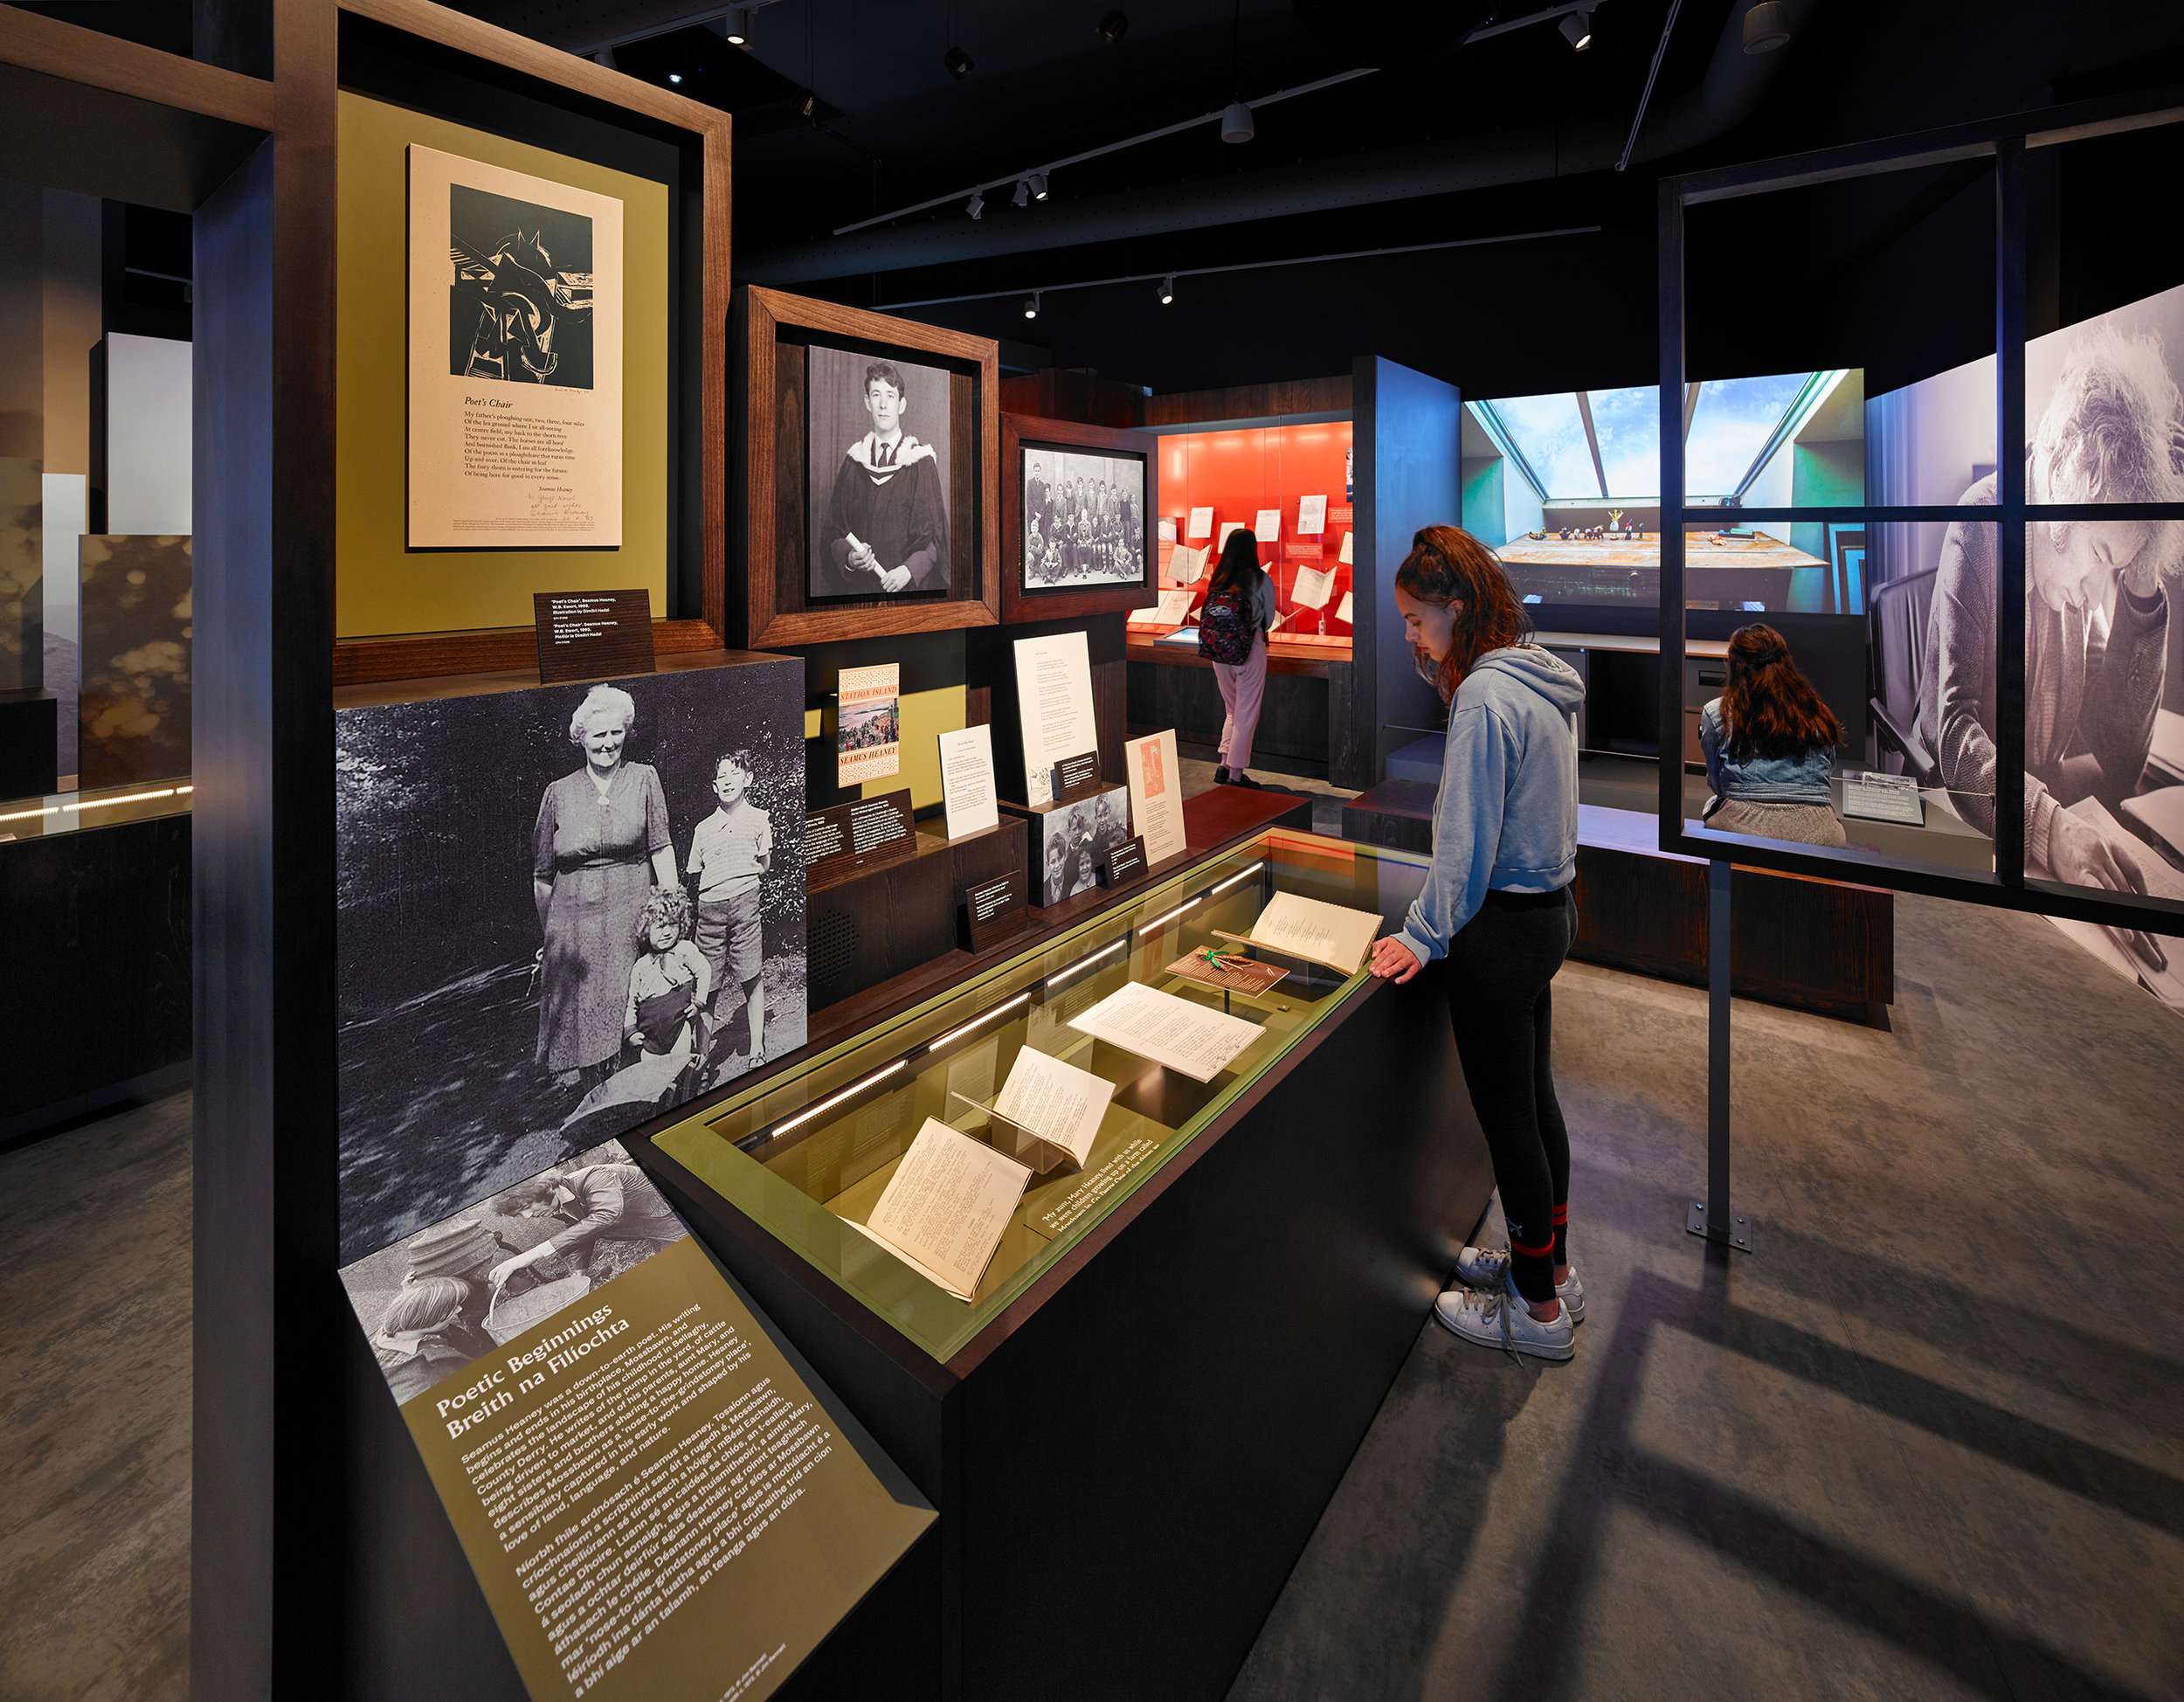 Listen Now Again, Seamus Heaney exhibition for the National Library of Ireland